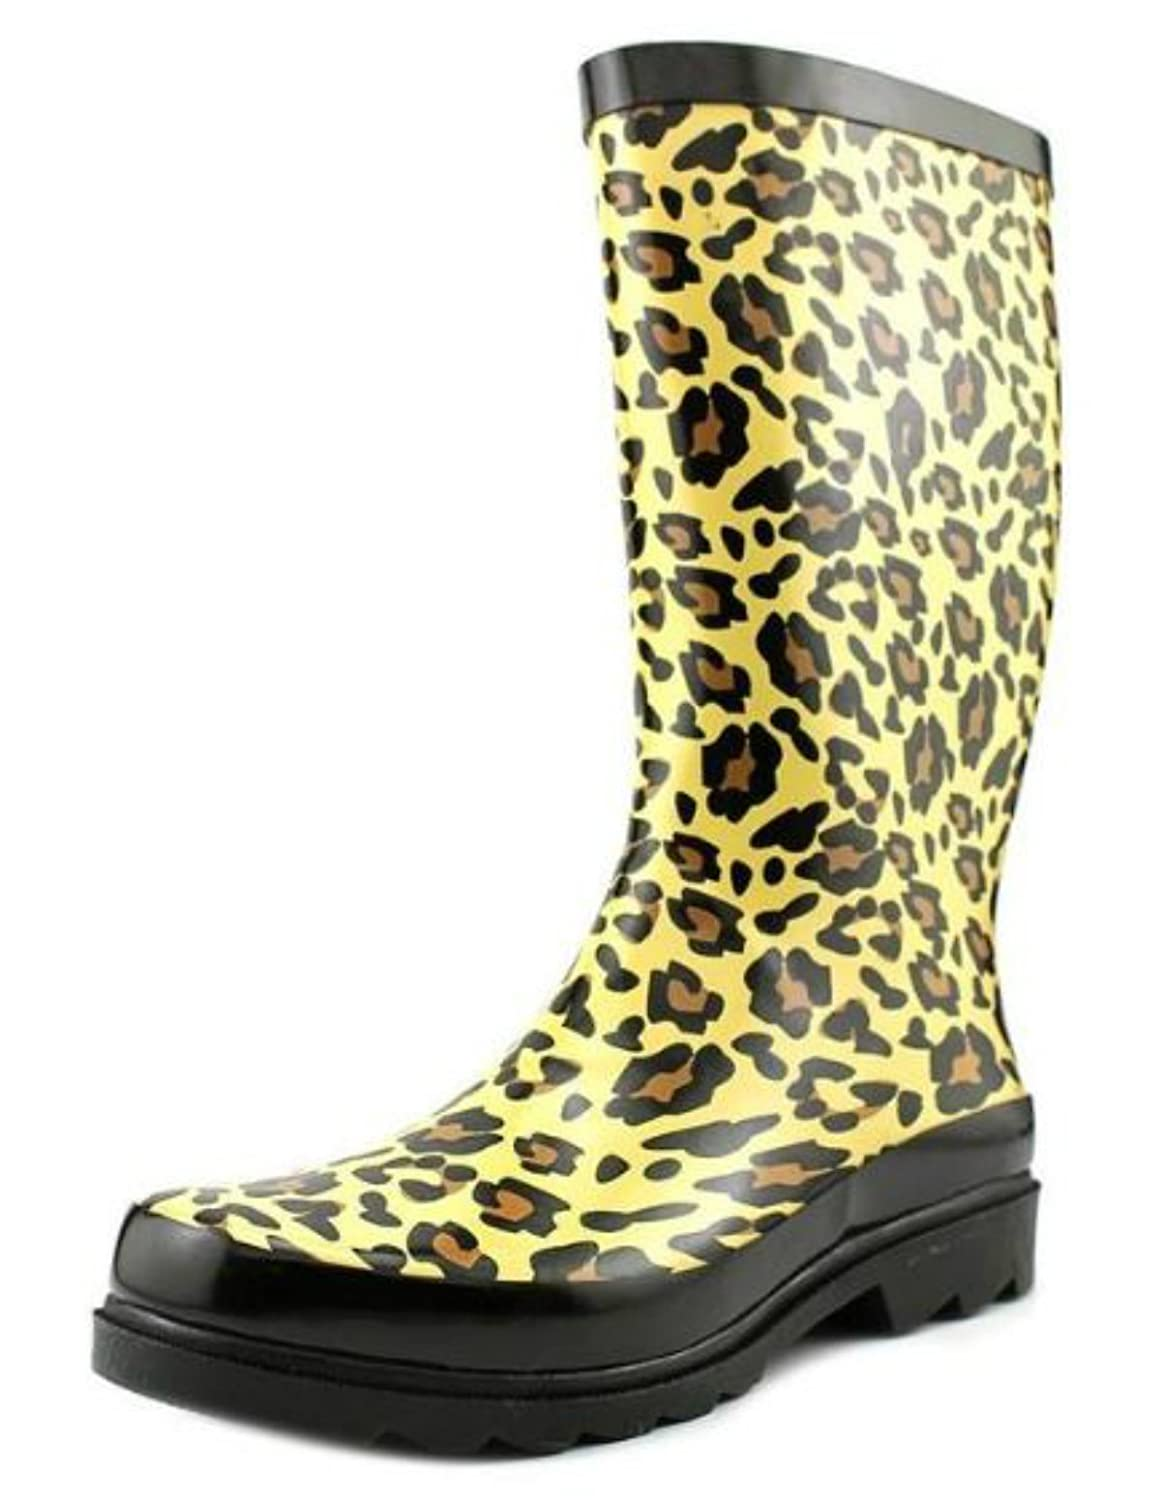 143 Girl Talory Women US 9 Gold Rain Boot